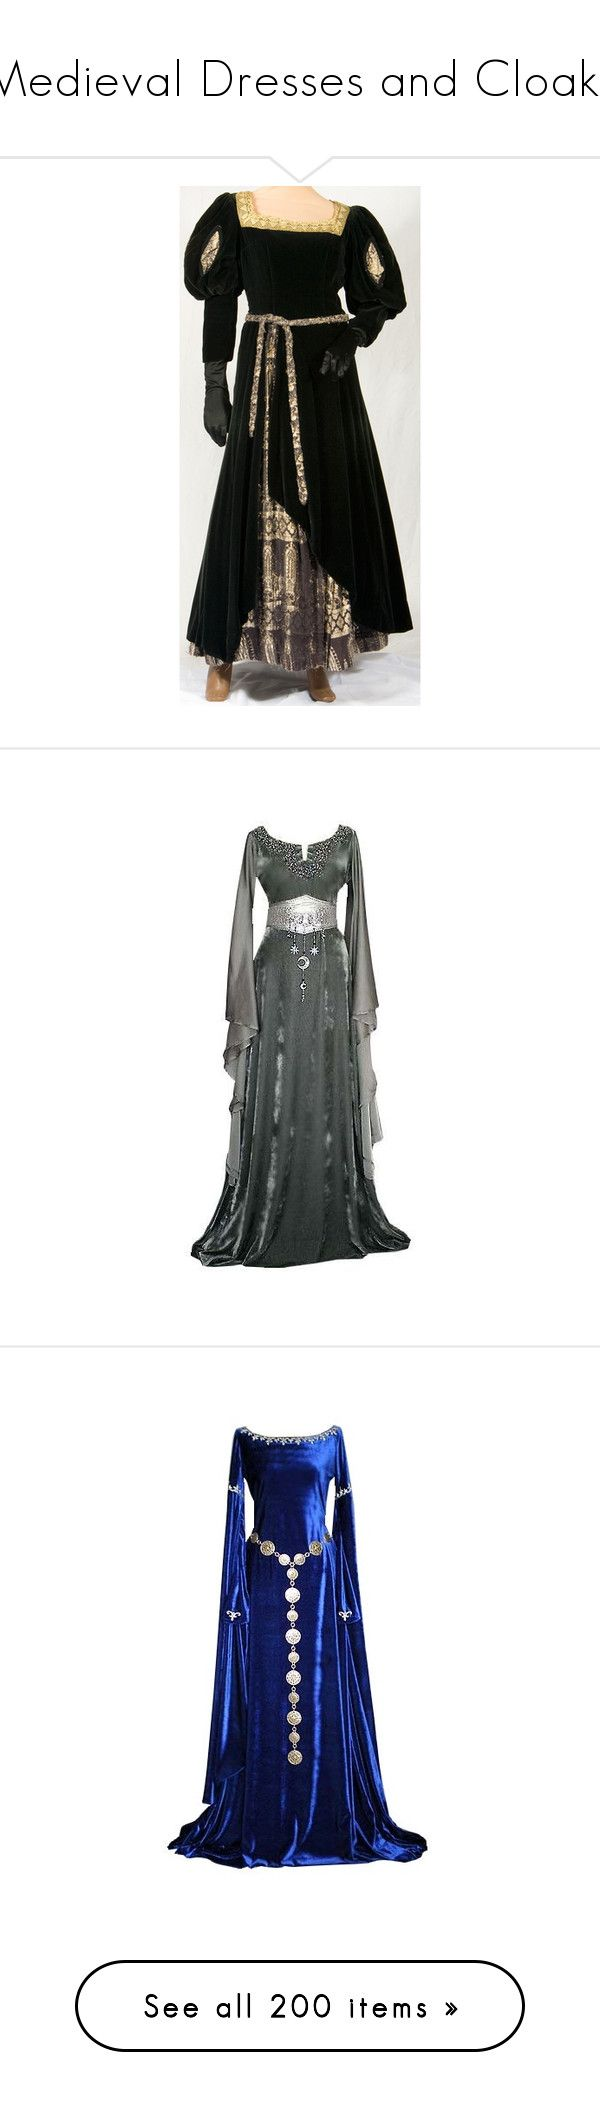 """""""Medieval Dresses and Cloaks"""" by just-call-me-chuck ❤ liked on Polyvore featuring costumes, dresses, medieval, renaissance, maid marion costume, plus size queen costume, maid marian costume, renaissance halloween costume, plus size womens costumes and gowns"""